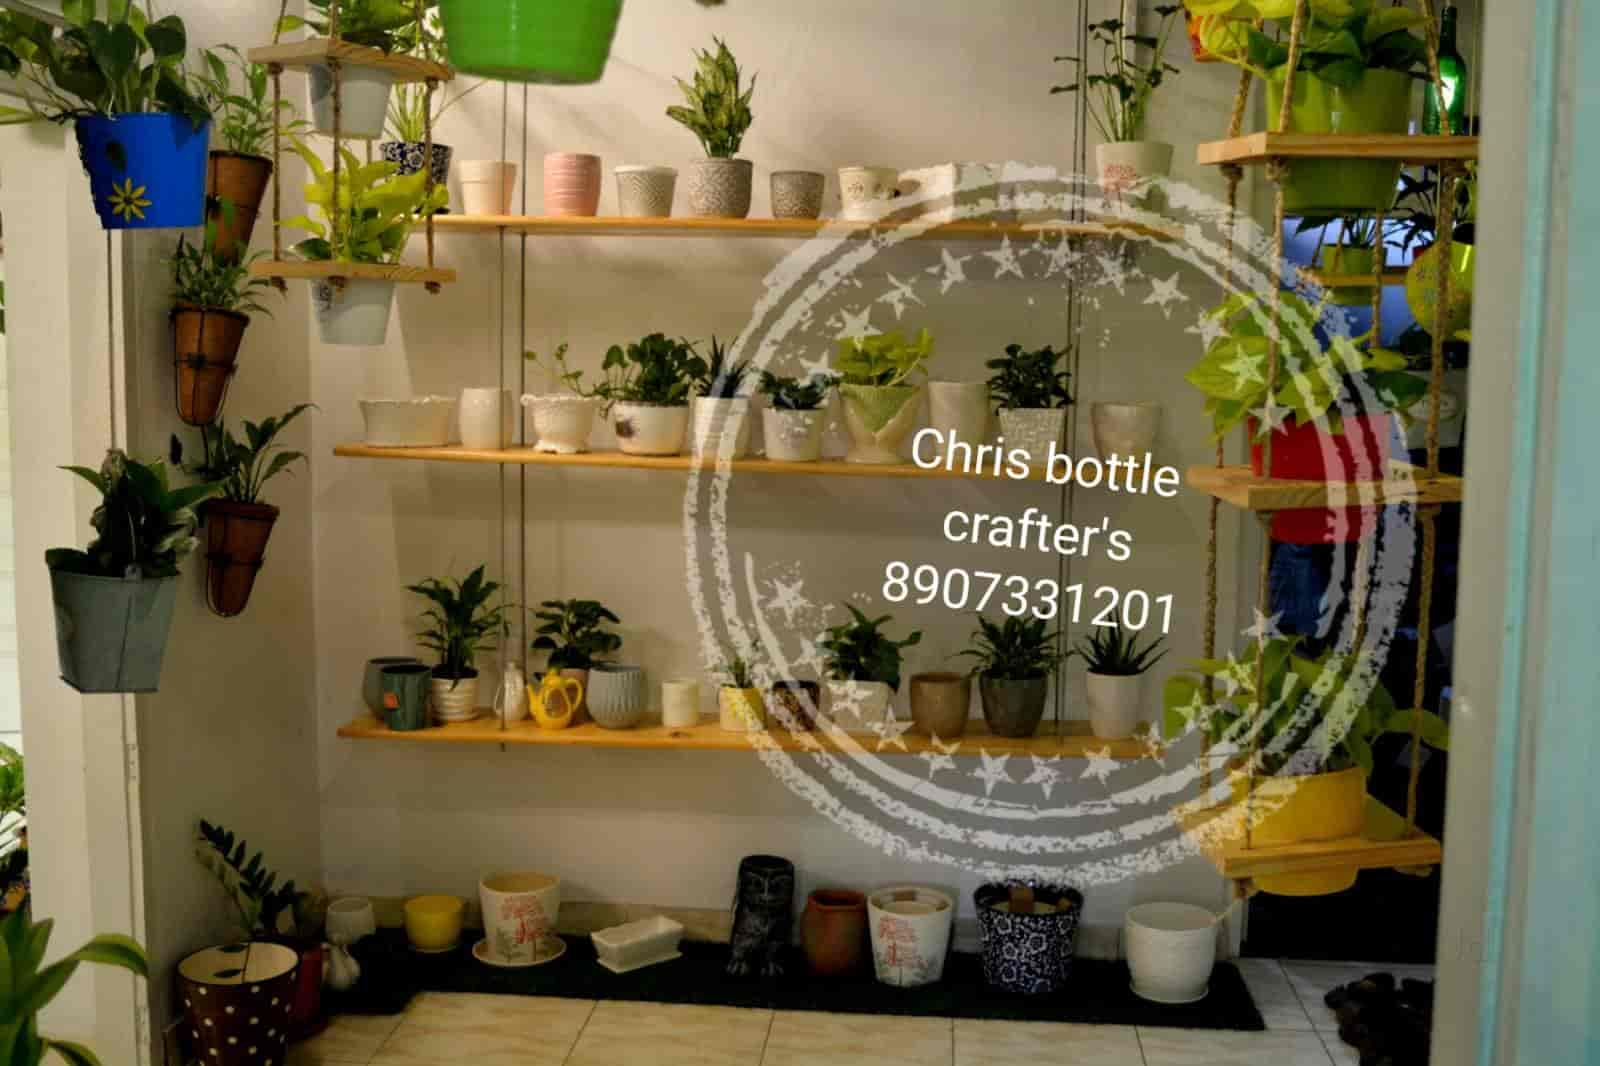 Chris Bottle Crafters Indoor Home Garden, Kolenchery   Bonsai Plant Dealers  In Ernakulam   Justdial